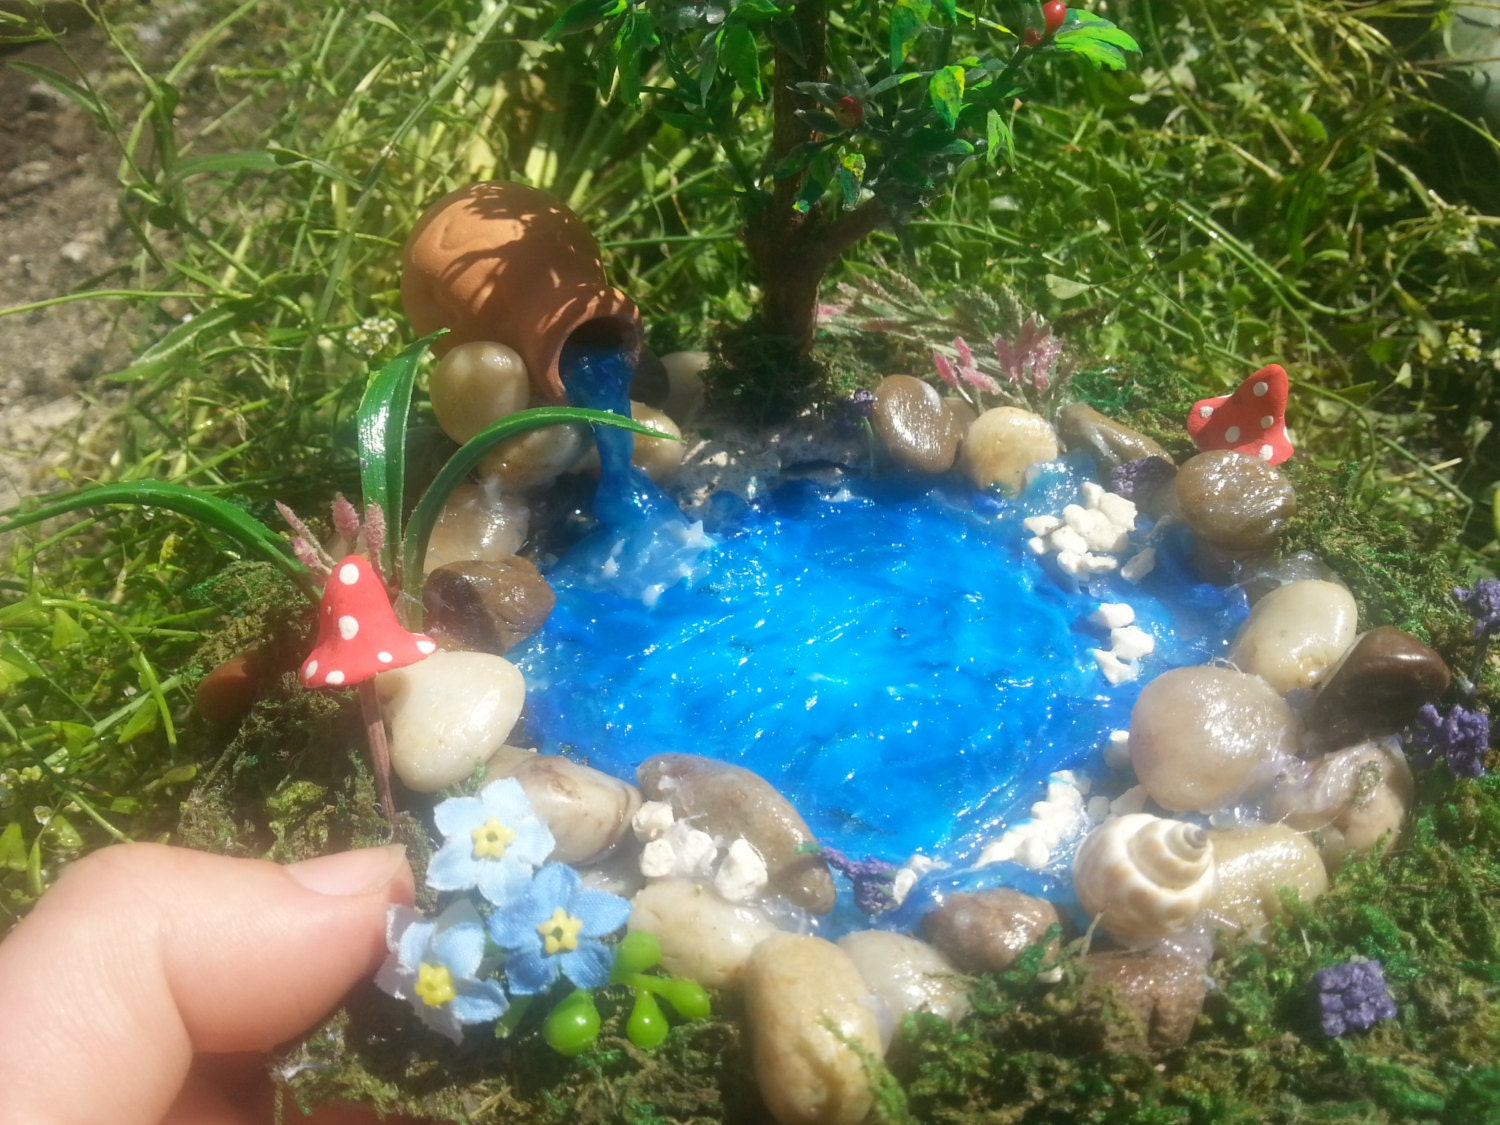 Sale fairy garden pondfairy pond miniature by Small garden fairies